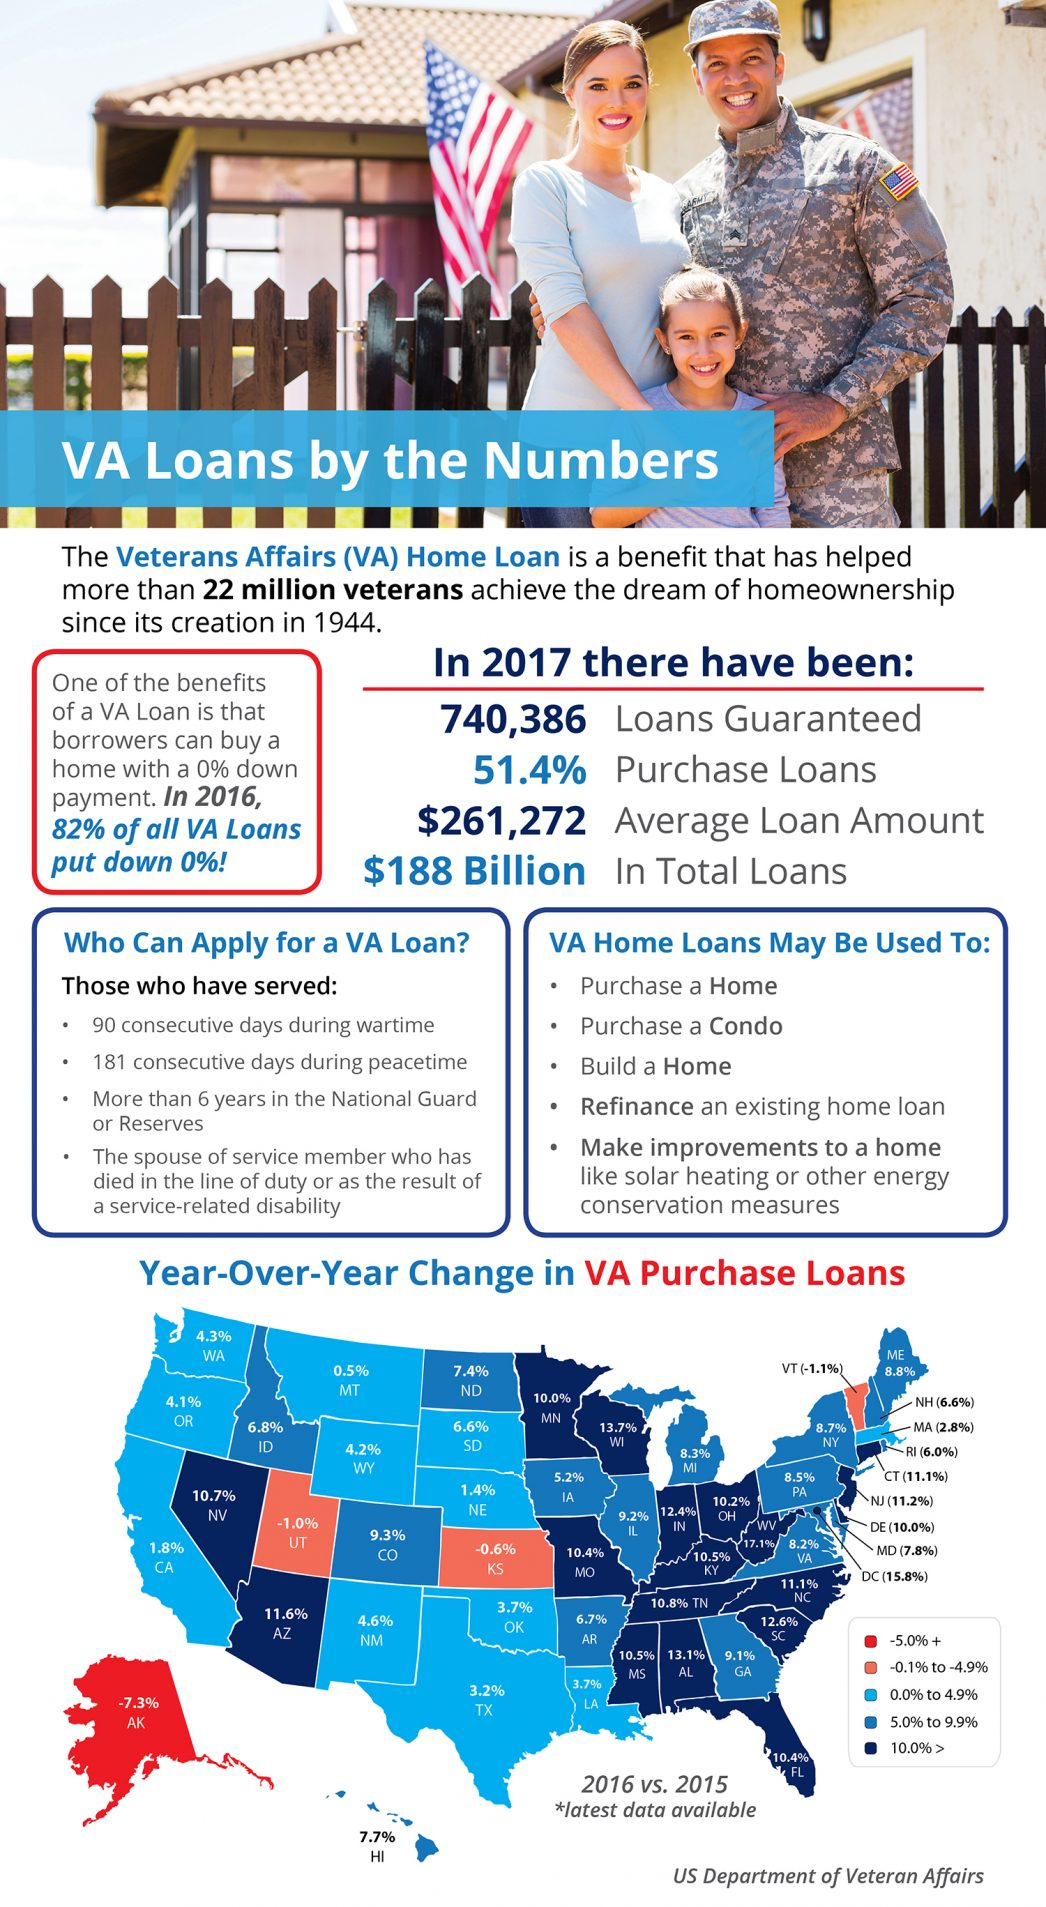 Veterans Affairs Loans by the Numbers [INFOGRAPHIC] | MyKCM